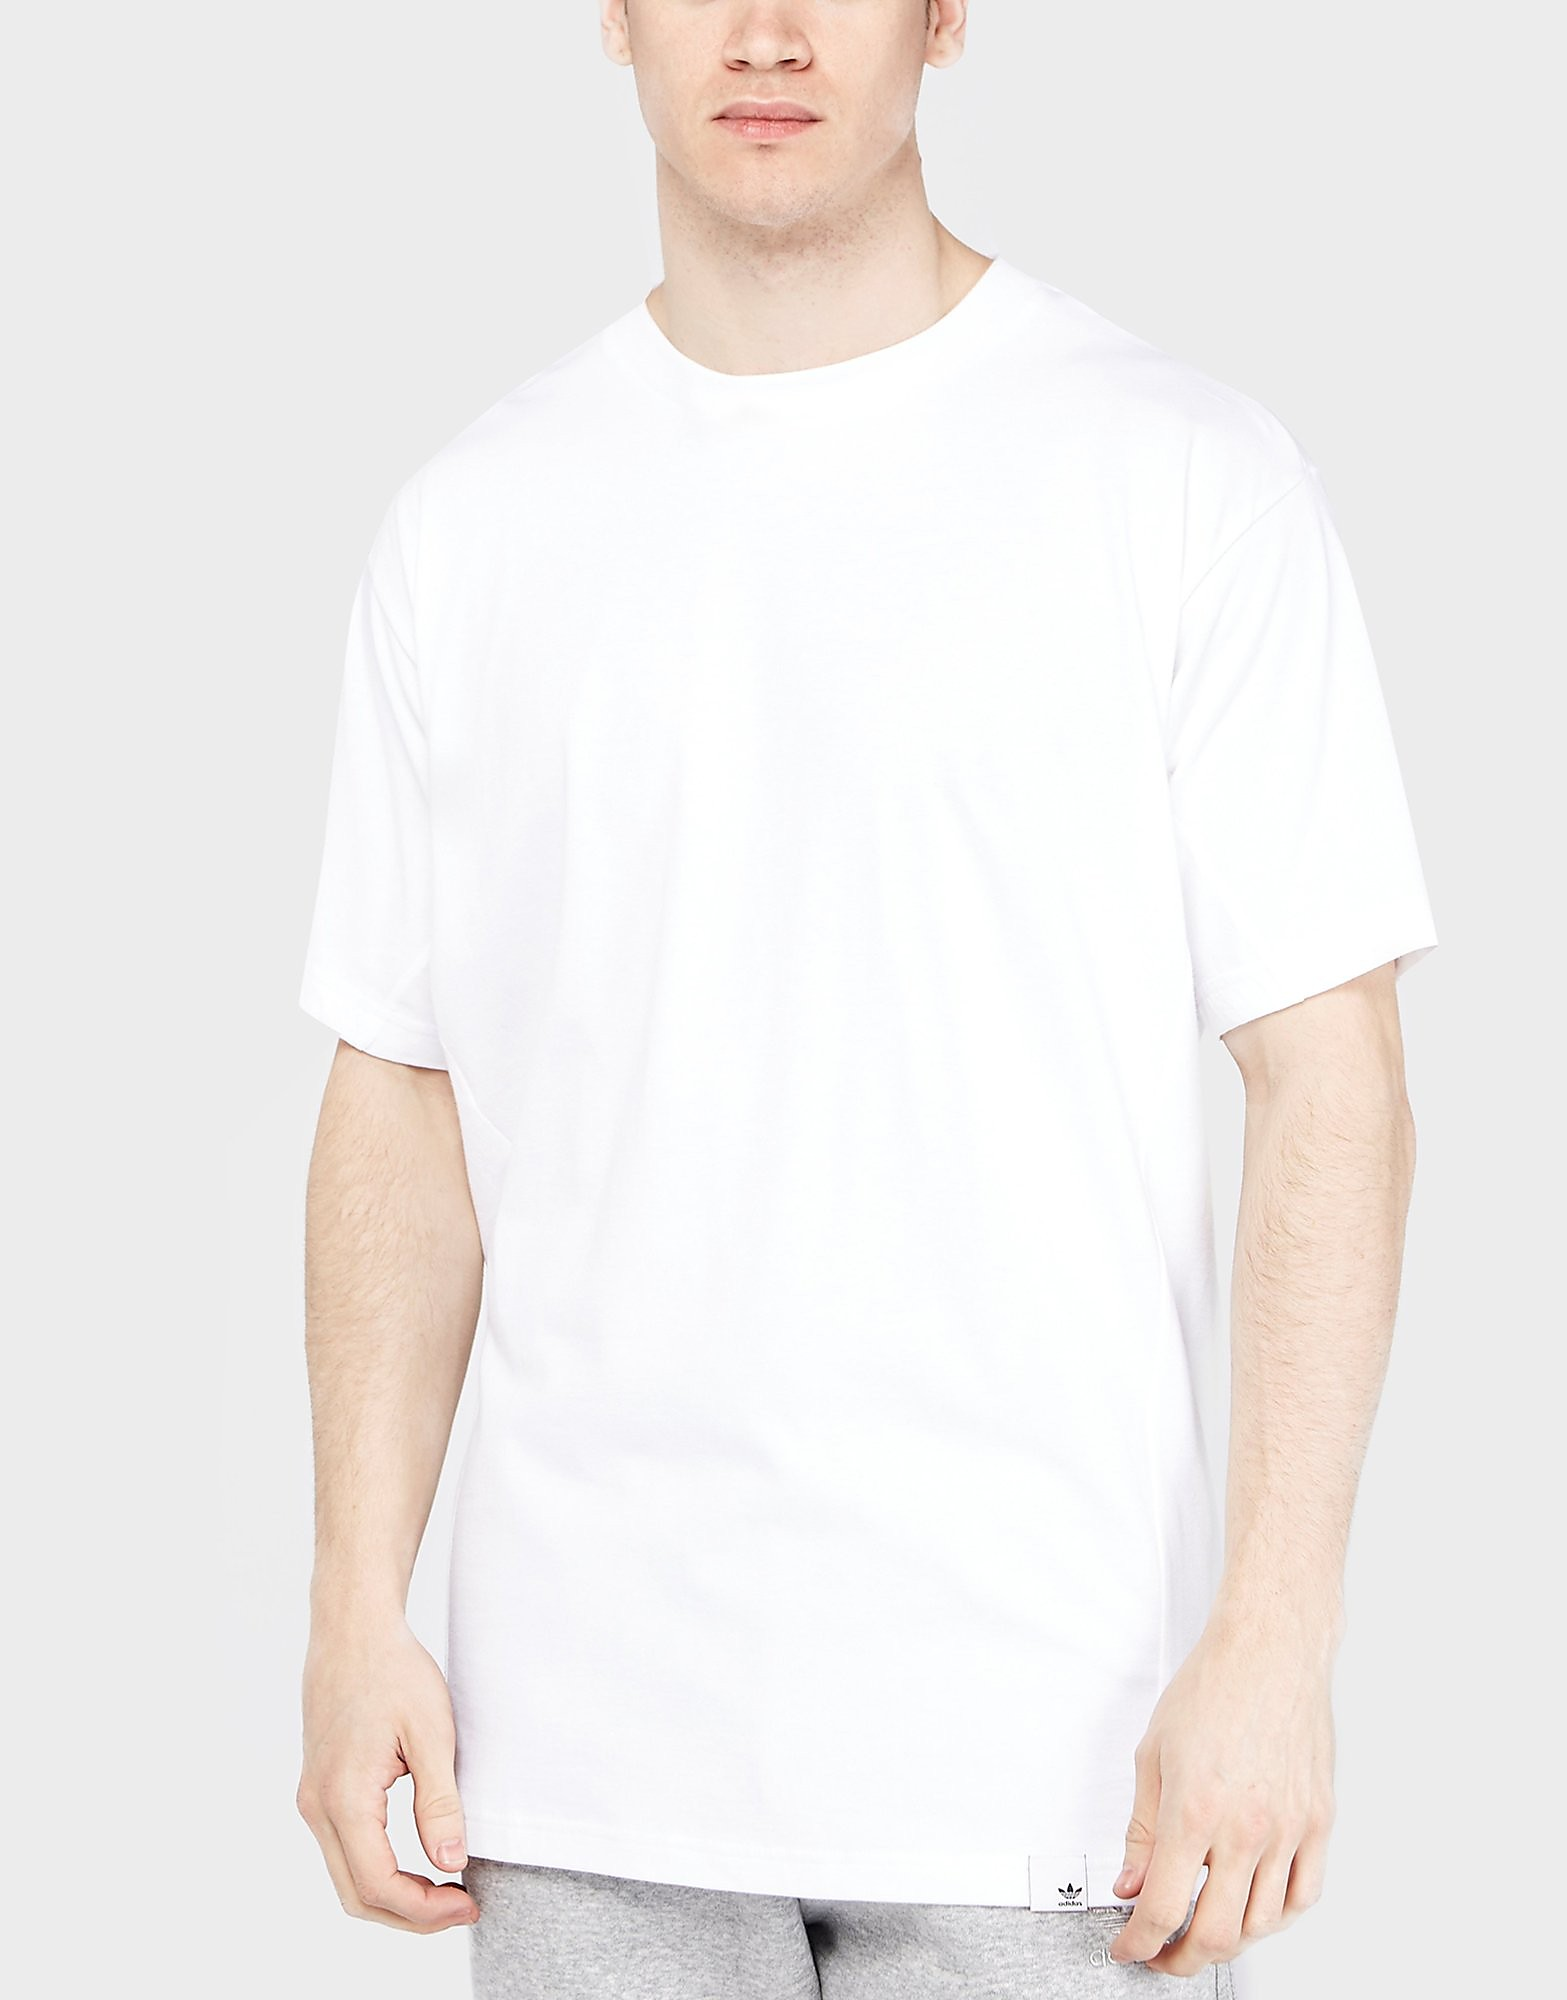 adidas Originals XBYO Crew Short Sleeve T-Shirt